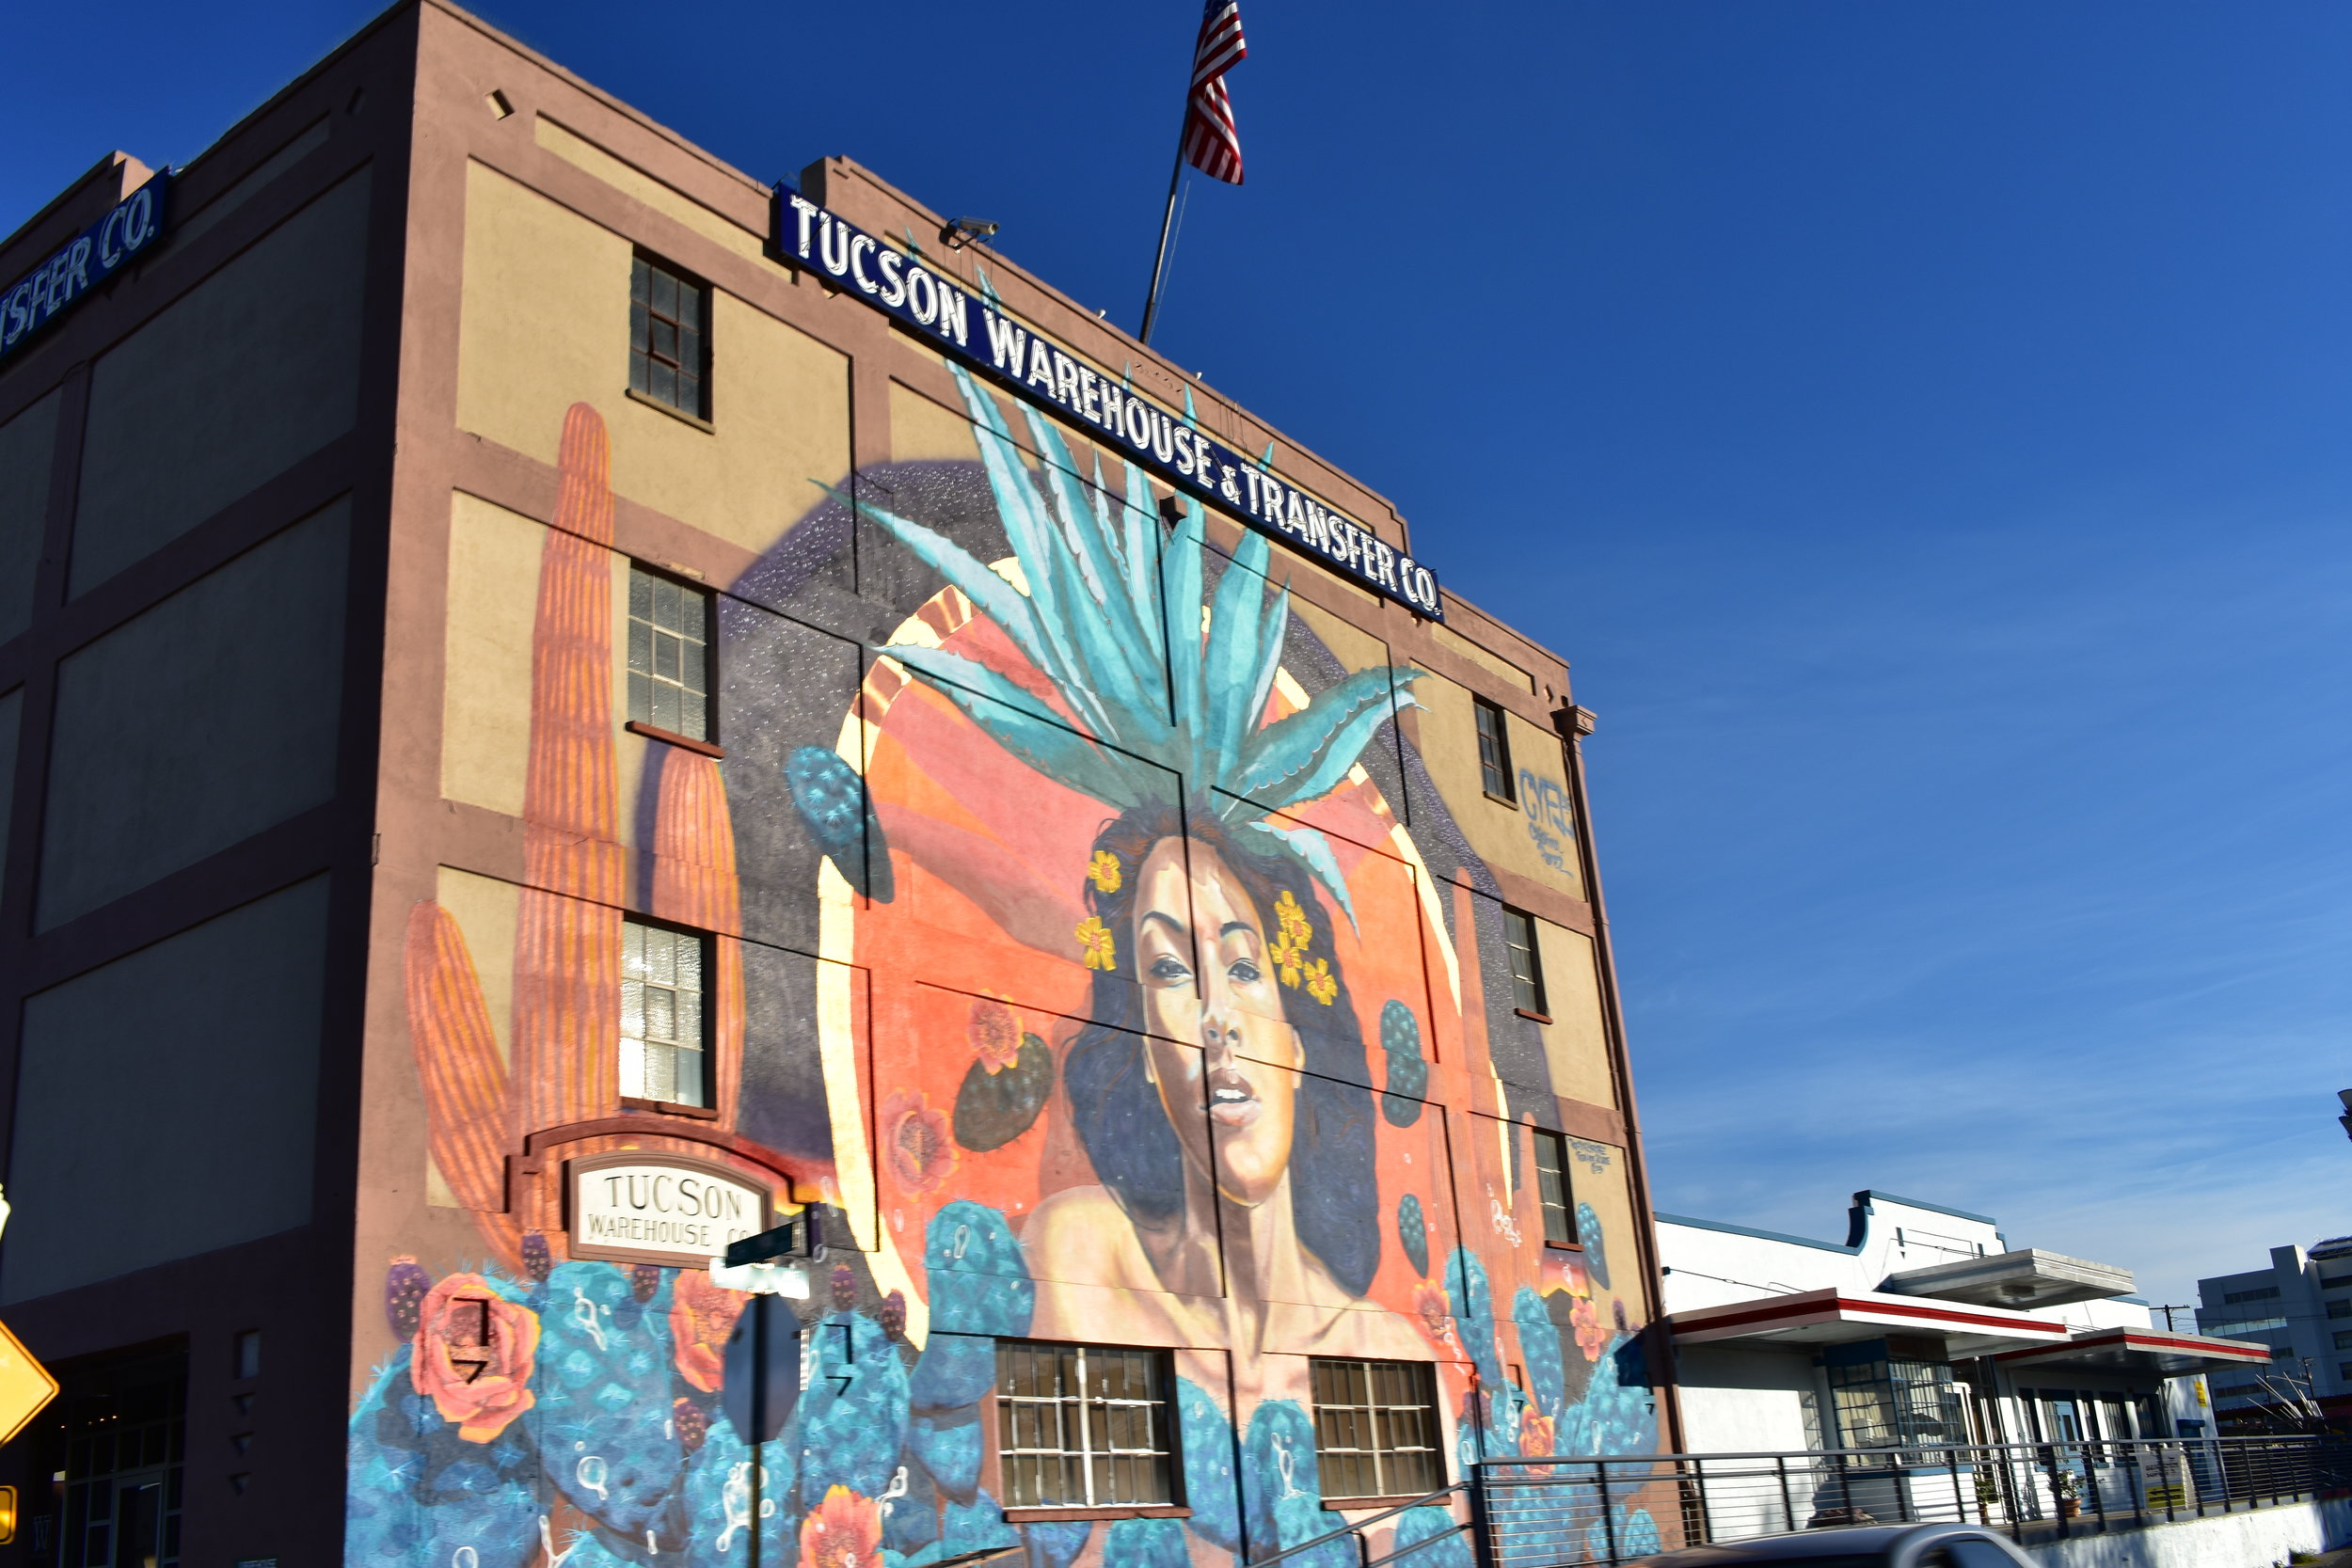 downtown-tucson-murals-and-graffiti-art